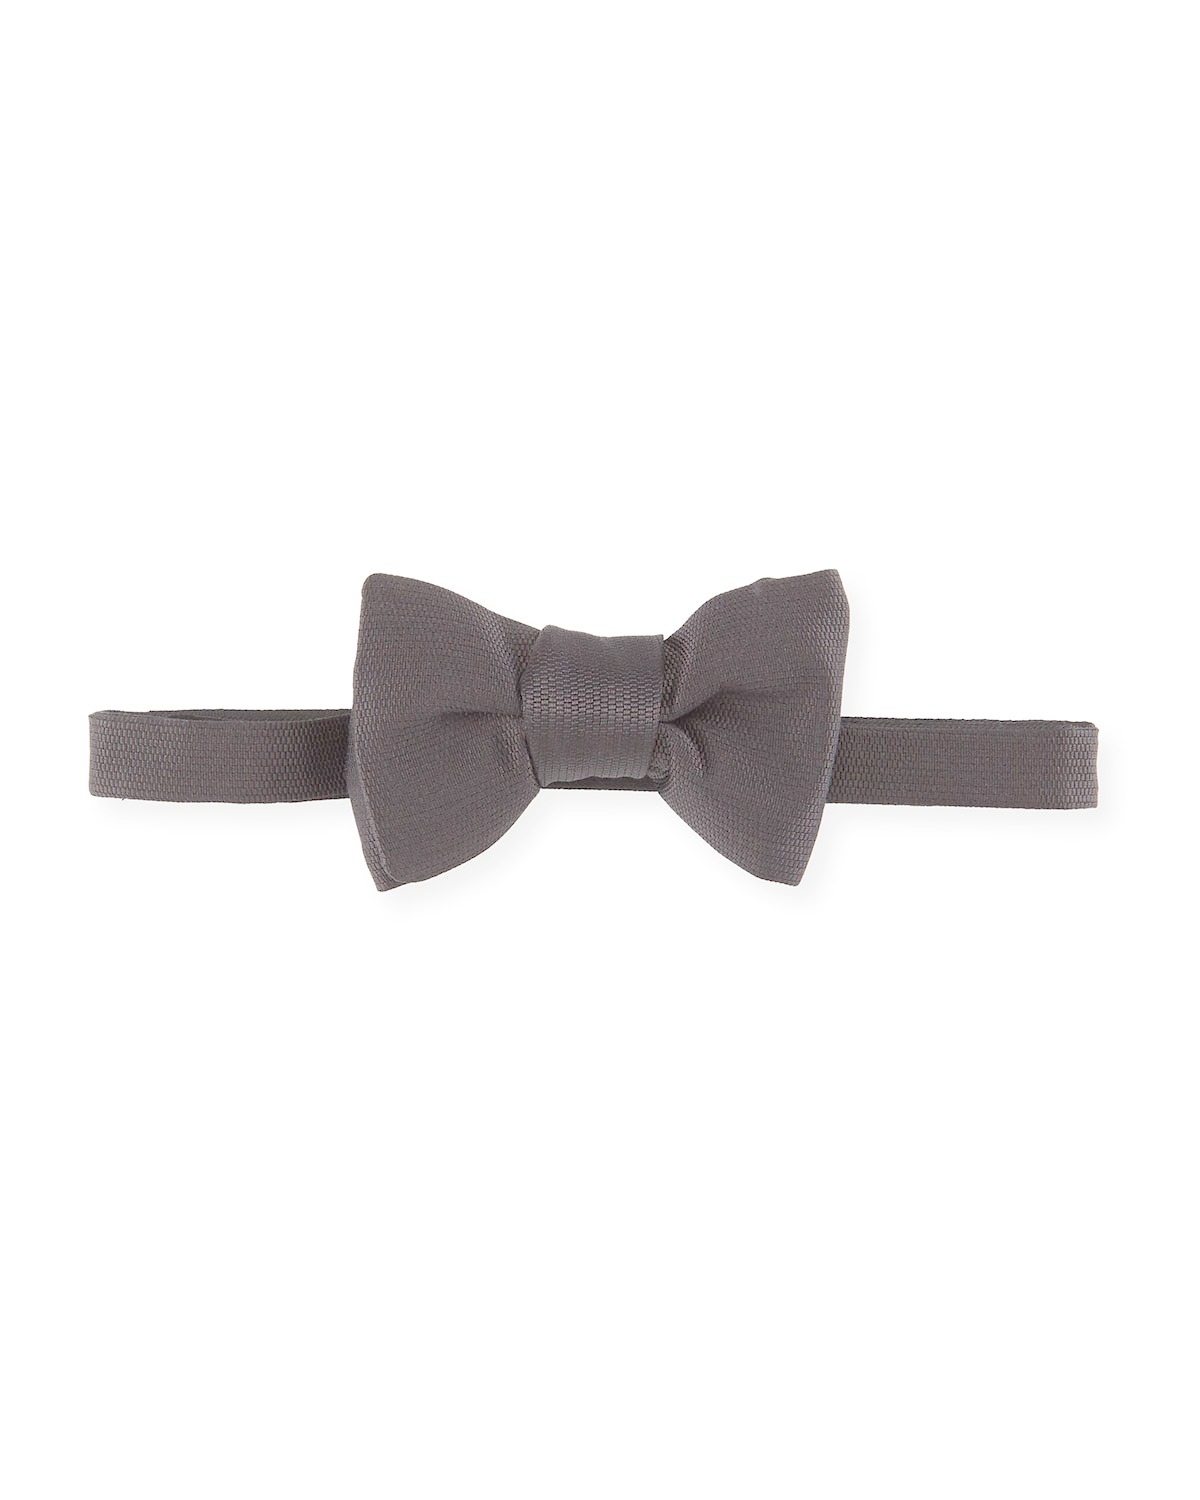 Tom ford Textured Silk Bow Tie in Black for Men